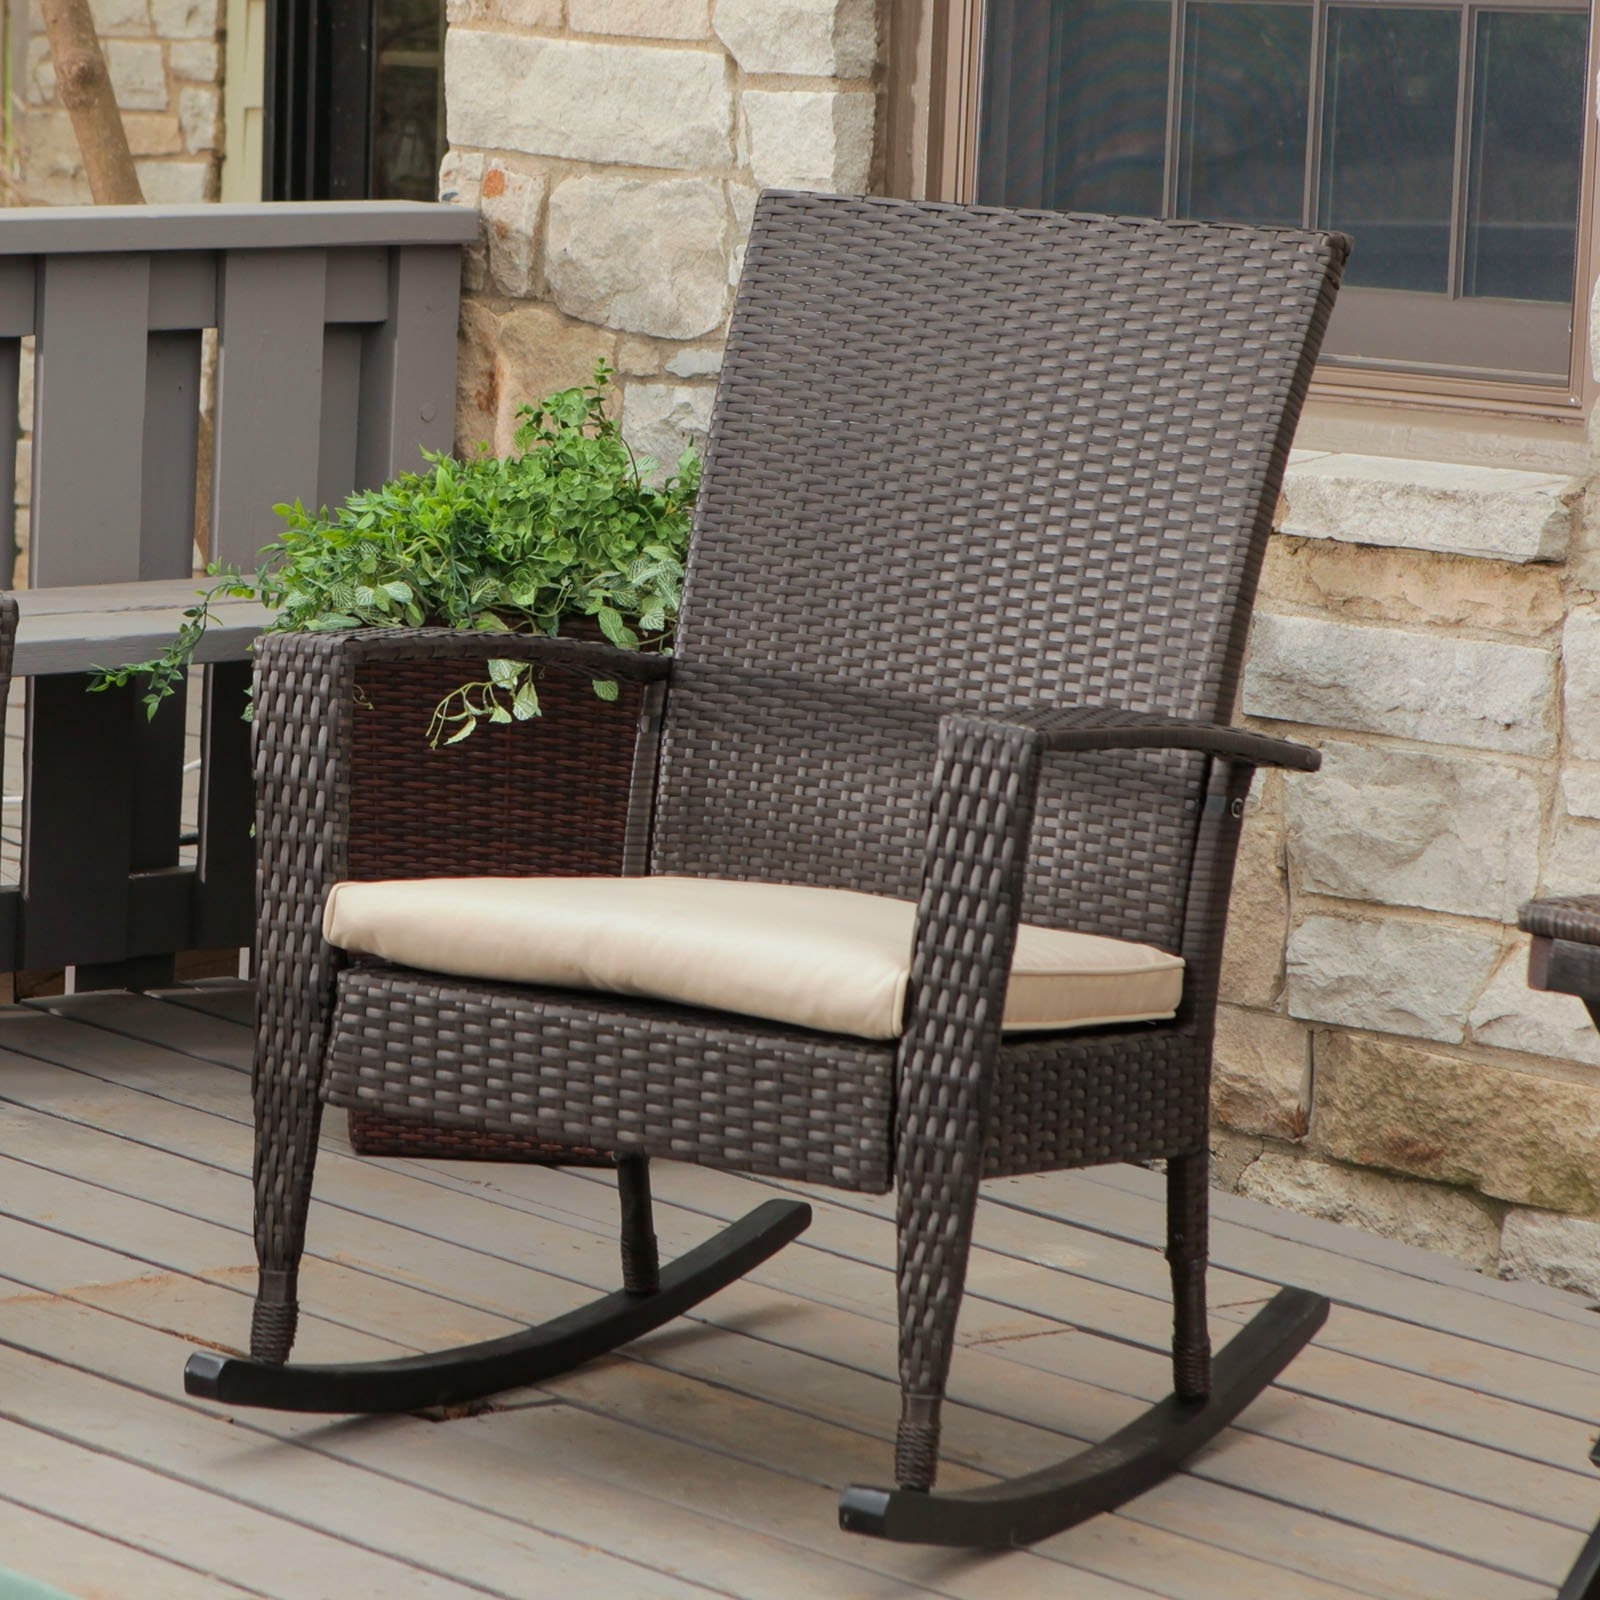 Decorating Modern Lawn Chairs Modern Balcony Furniture Modern Patio Regarding Trendy Patio Rocking Chairs (View 4 of 15)